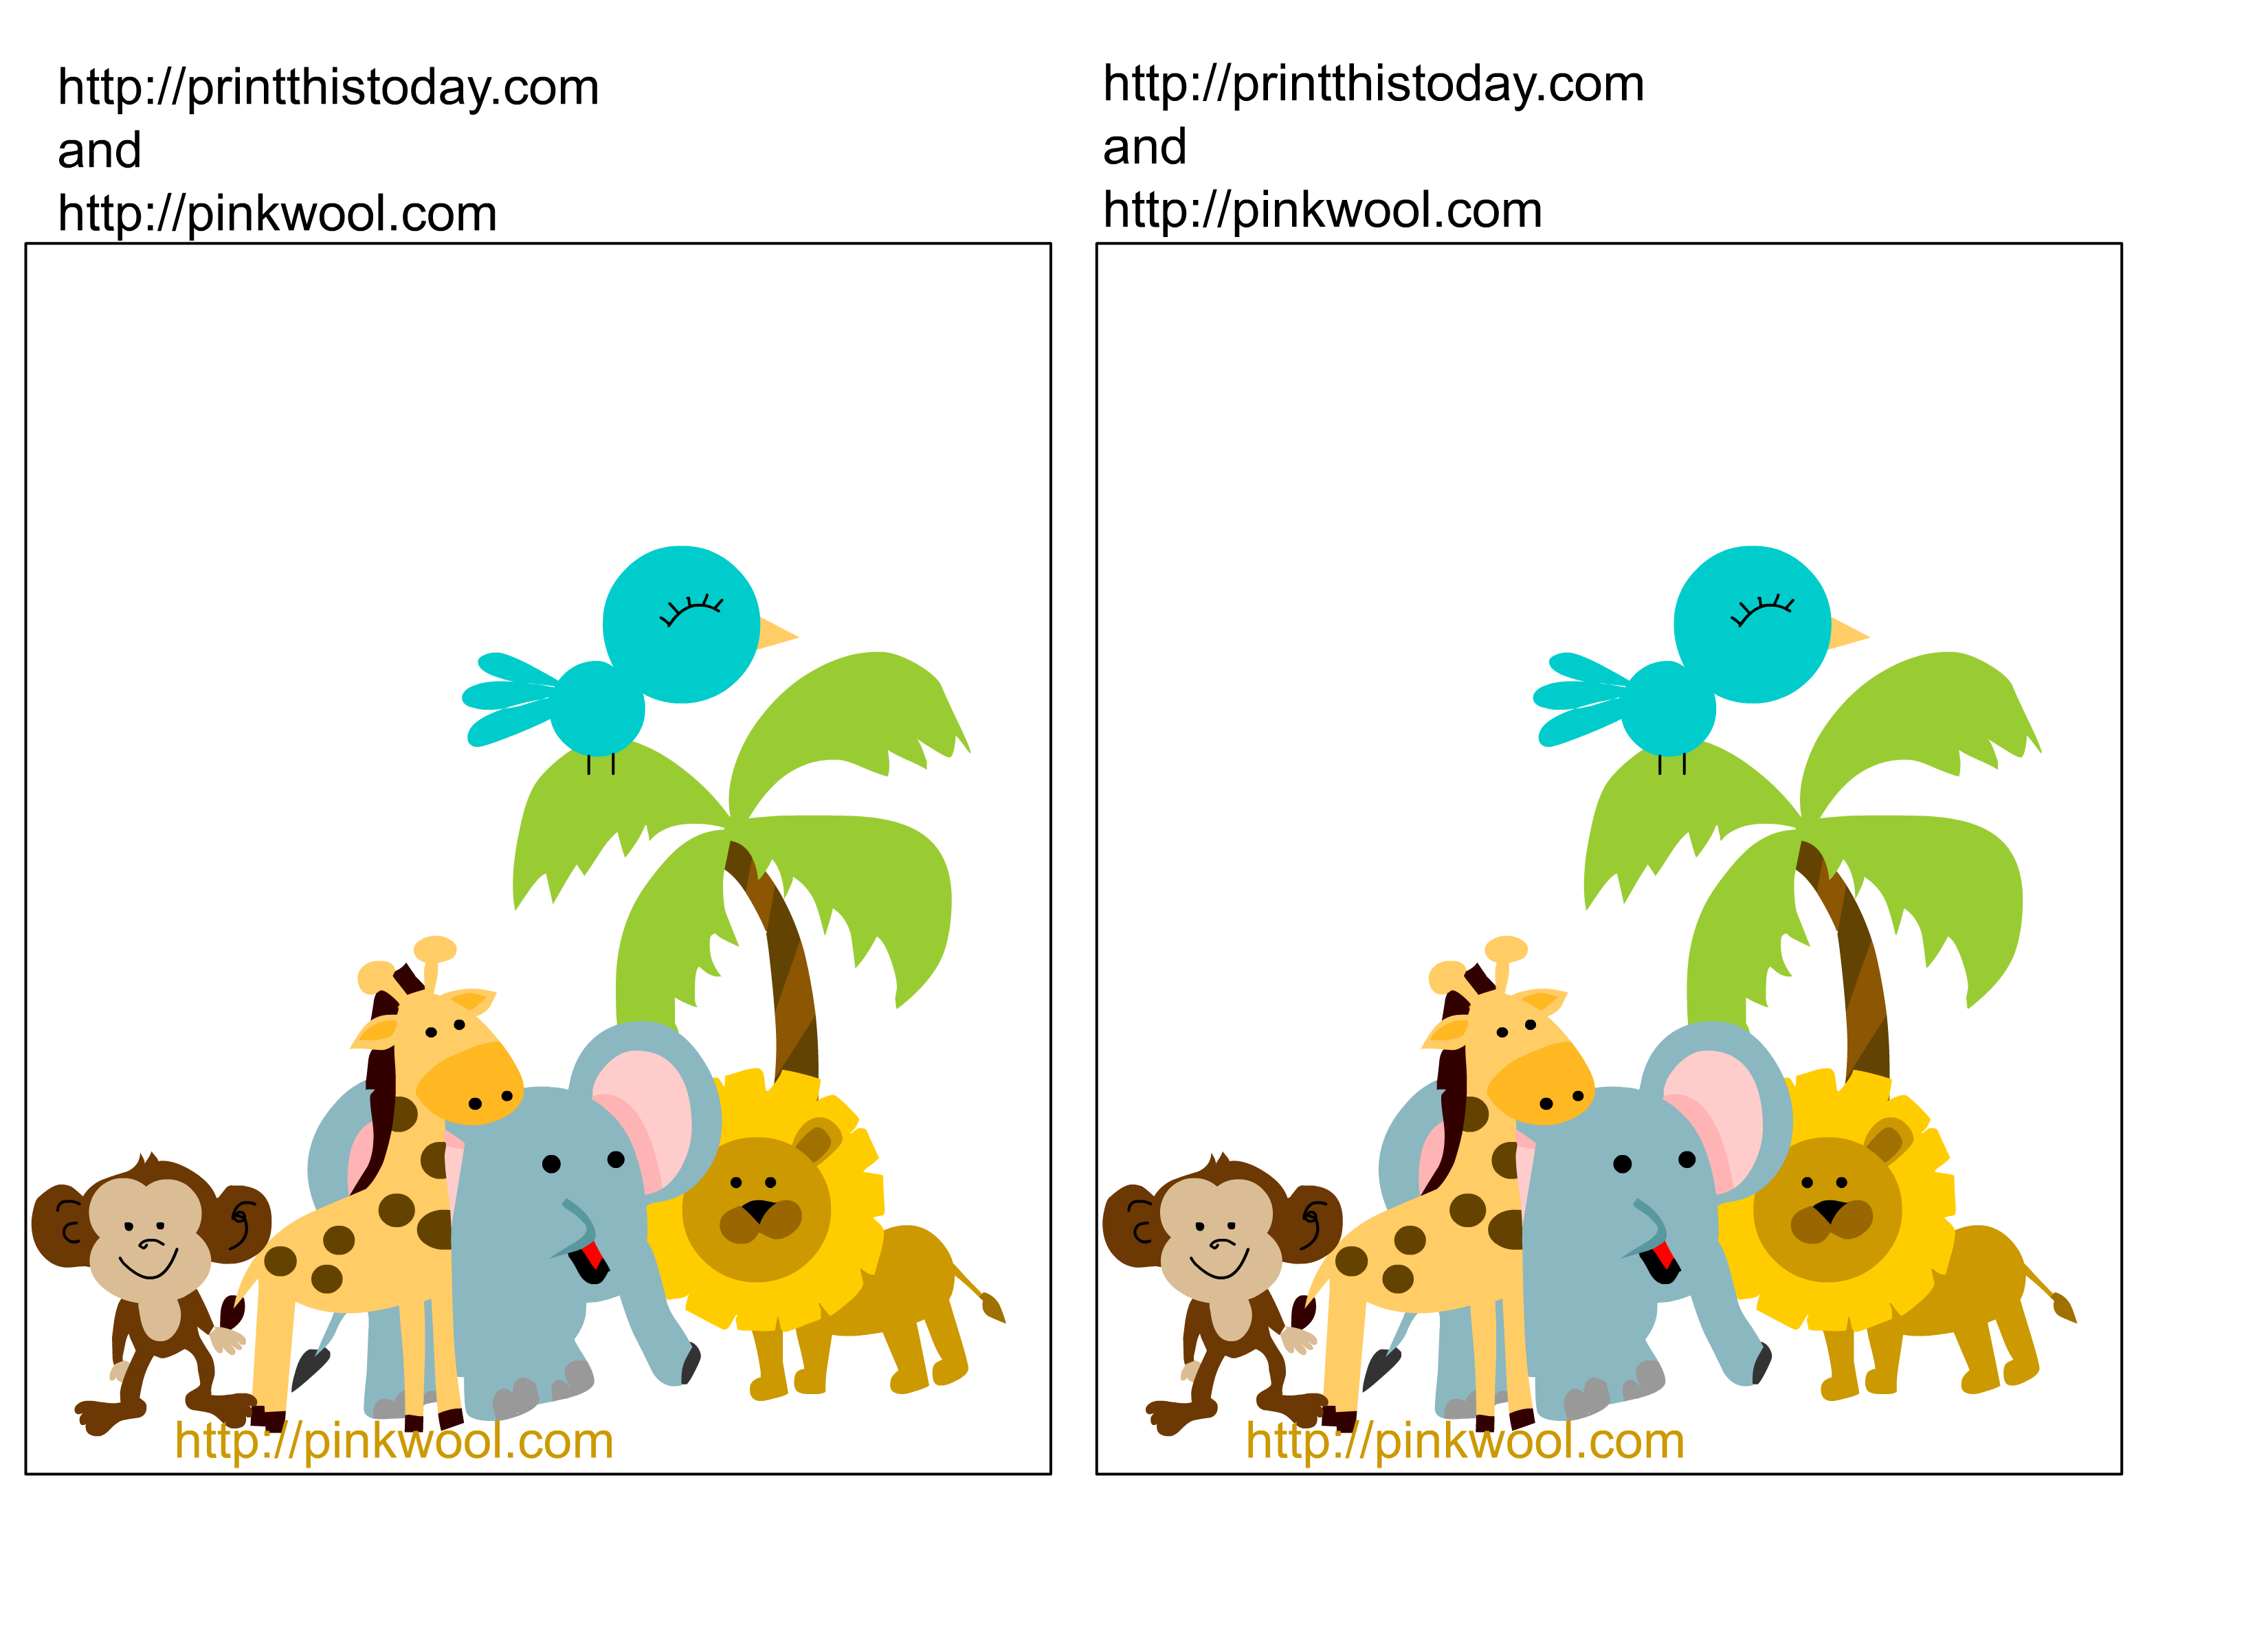 Http pinkwool com babyshower. Tree clipart baby shower